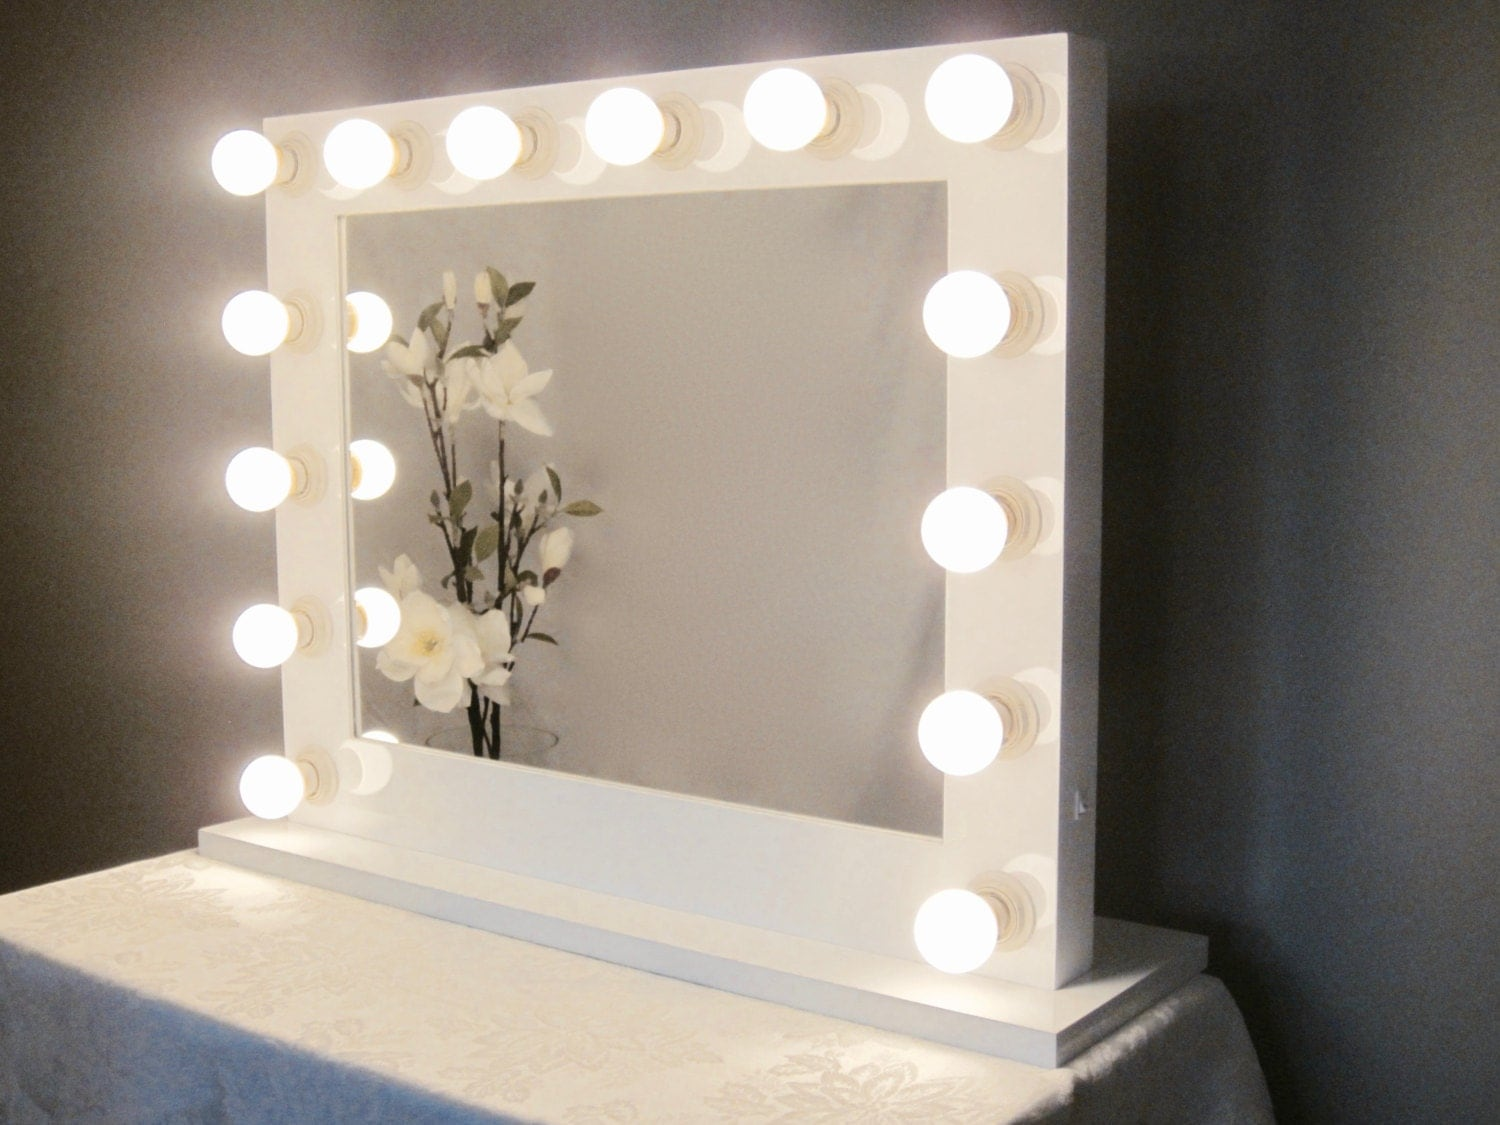 Vanity Mirror Led Light Bulbs : Grand Hollywood Lighted Vanity Mirror w/ LED Bulbs by ImpactVanity